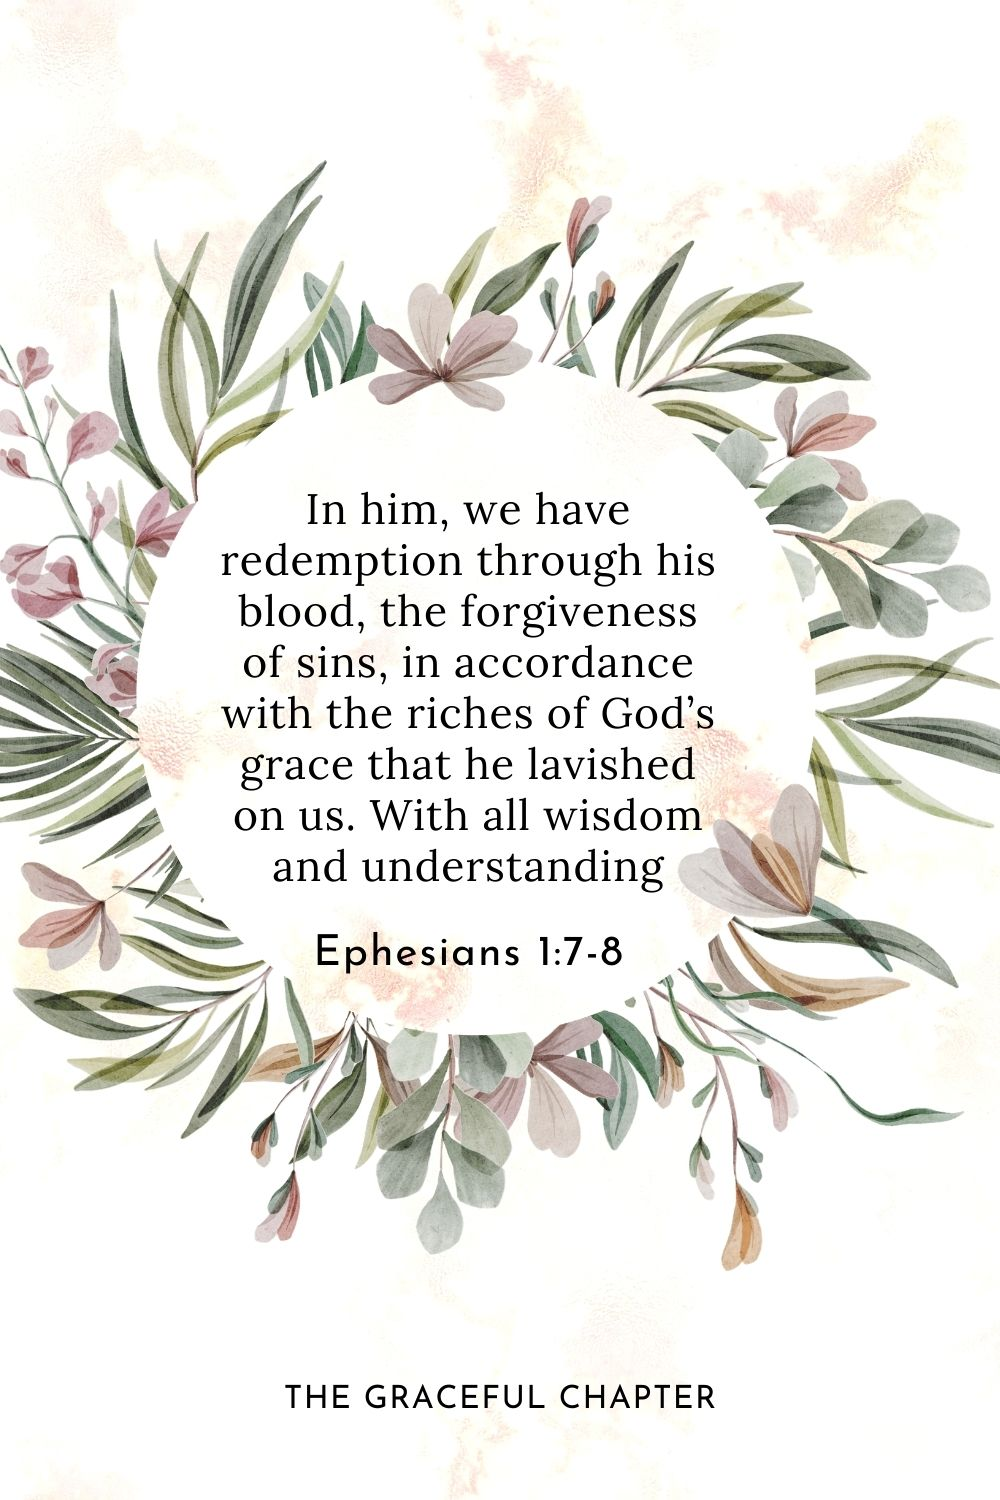 In him, we have redemption through his blood, the forgiveness of sins, in accordance with the riches of God's grace that he lavished on us. With all wisdom and understanding Ephesians 1:7-8